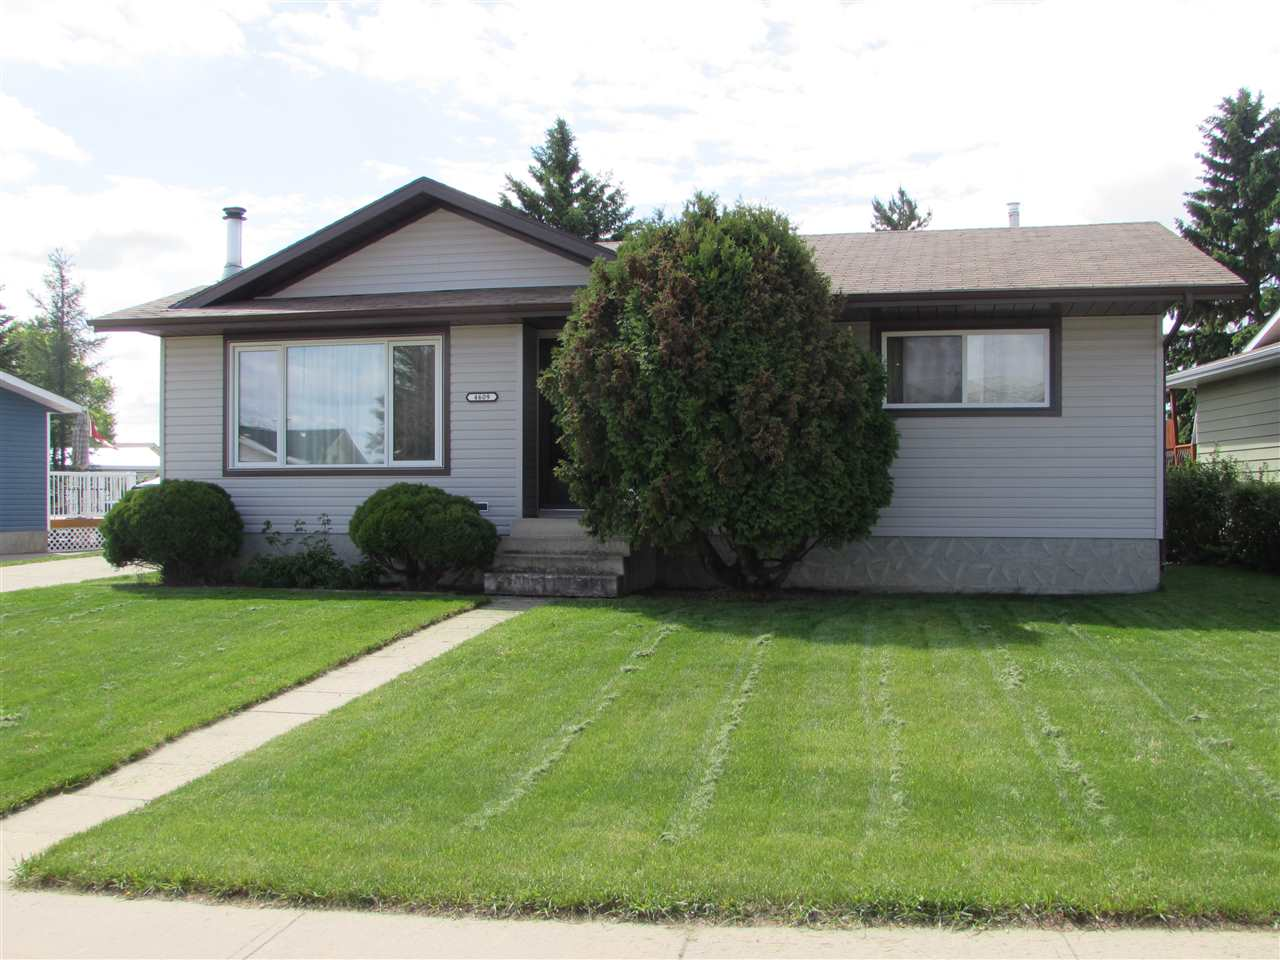 Extremely well taken care of bungalow with plenty of upgrades.  Backs onto park. Furnace in 2018, Hot water Tank in 2013, Shingles in 2010, Window in 2004 and 2017, siding in 2008, Kitchen renovation and much much more... 1150 sq.ft with double insulated detached garage.  Partly finished basement with fireplace, rec room and bedroom and potential bathroom.  This 1980 home has been well taken care of and price of ownership is apparent from the minute you walk in.